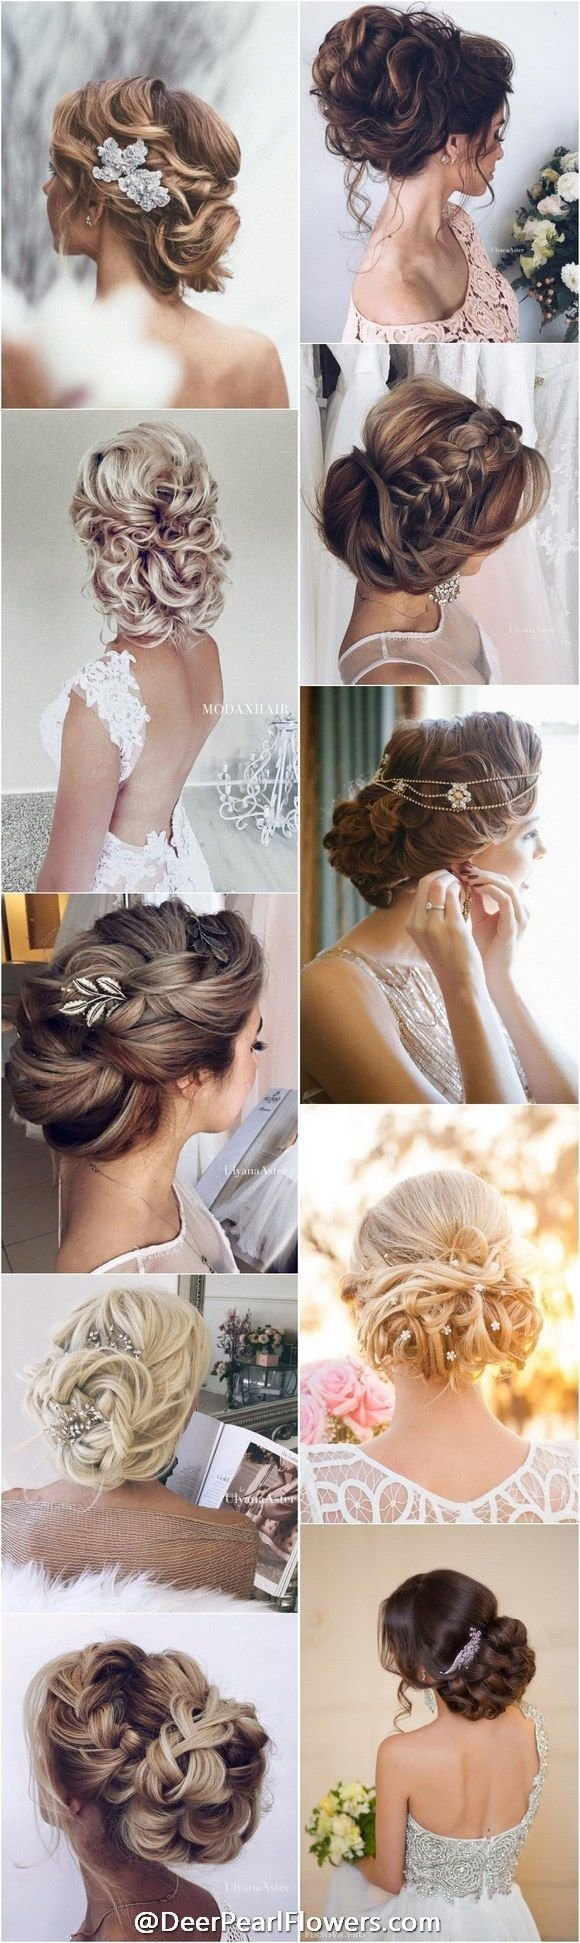 New Best 25 Country Wedding Hairstyles Ideas On Pinterest Ideas With Pictures